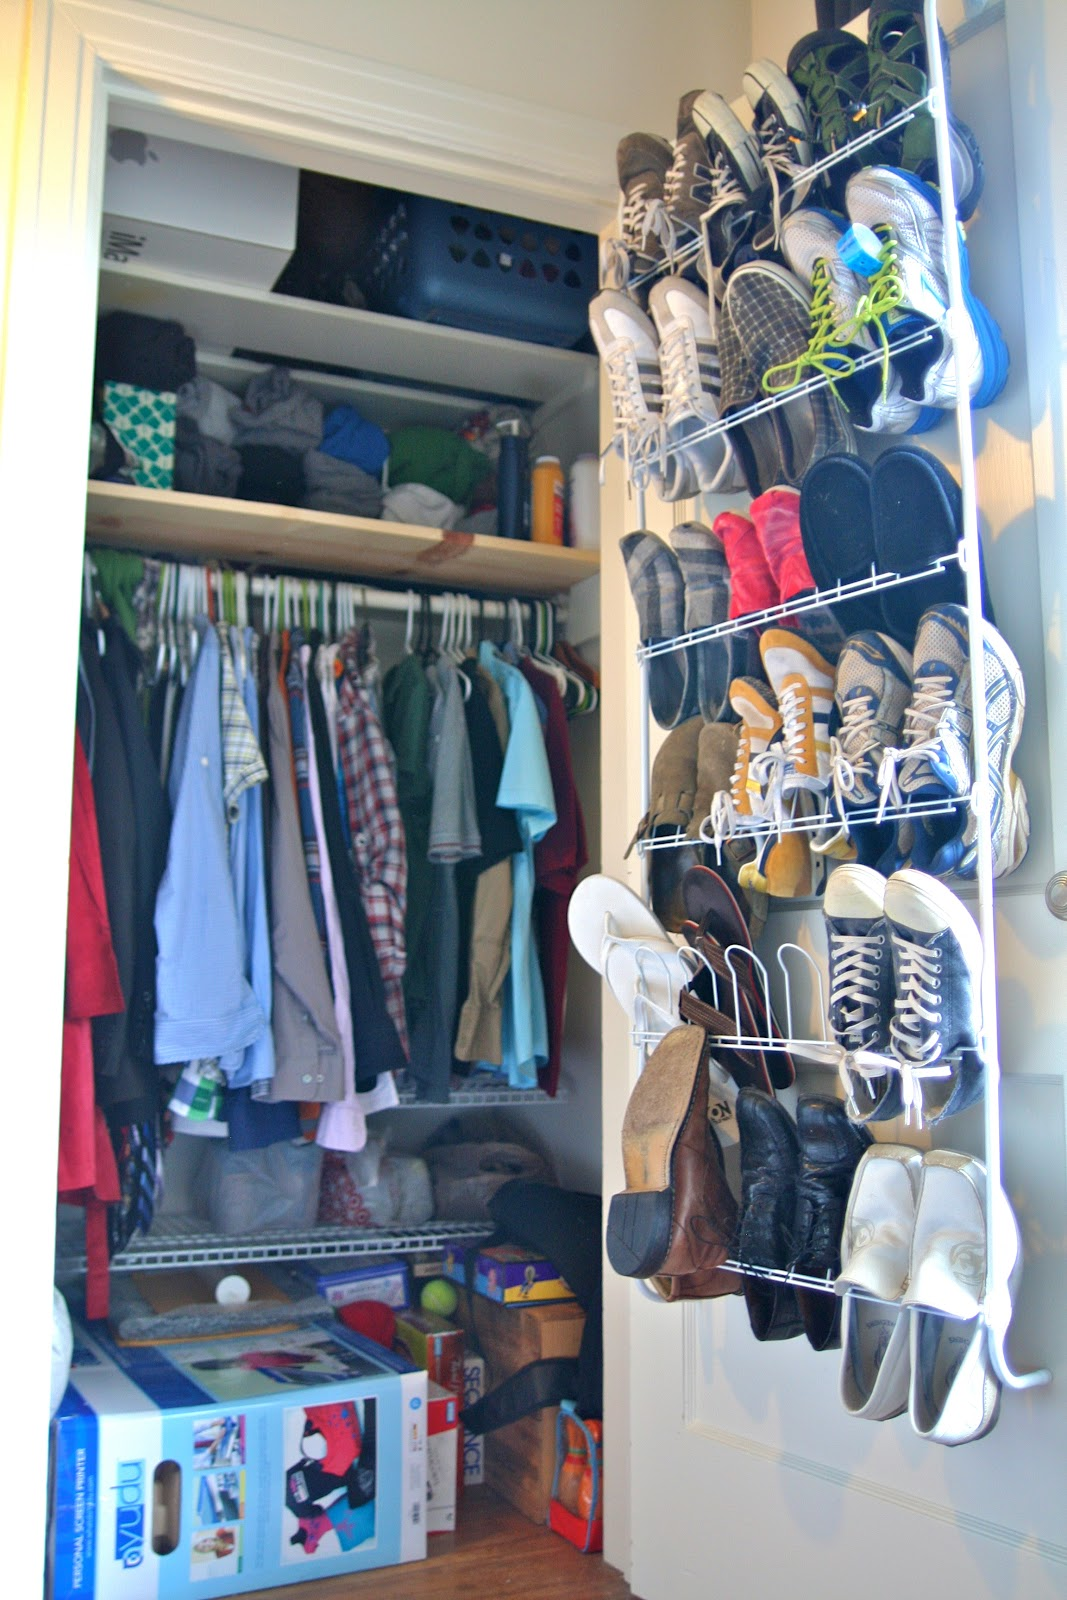 It 39 s my intention small space living maximizing closets for Maximize small closet